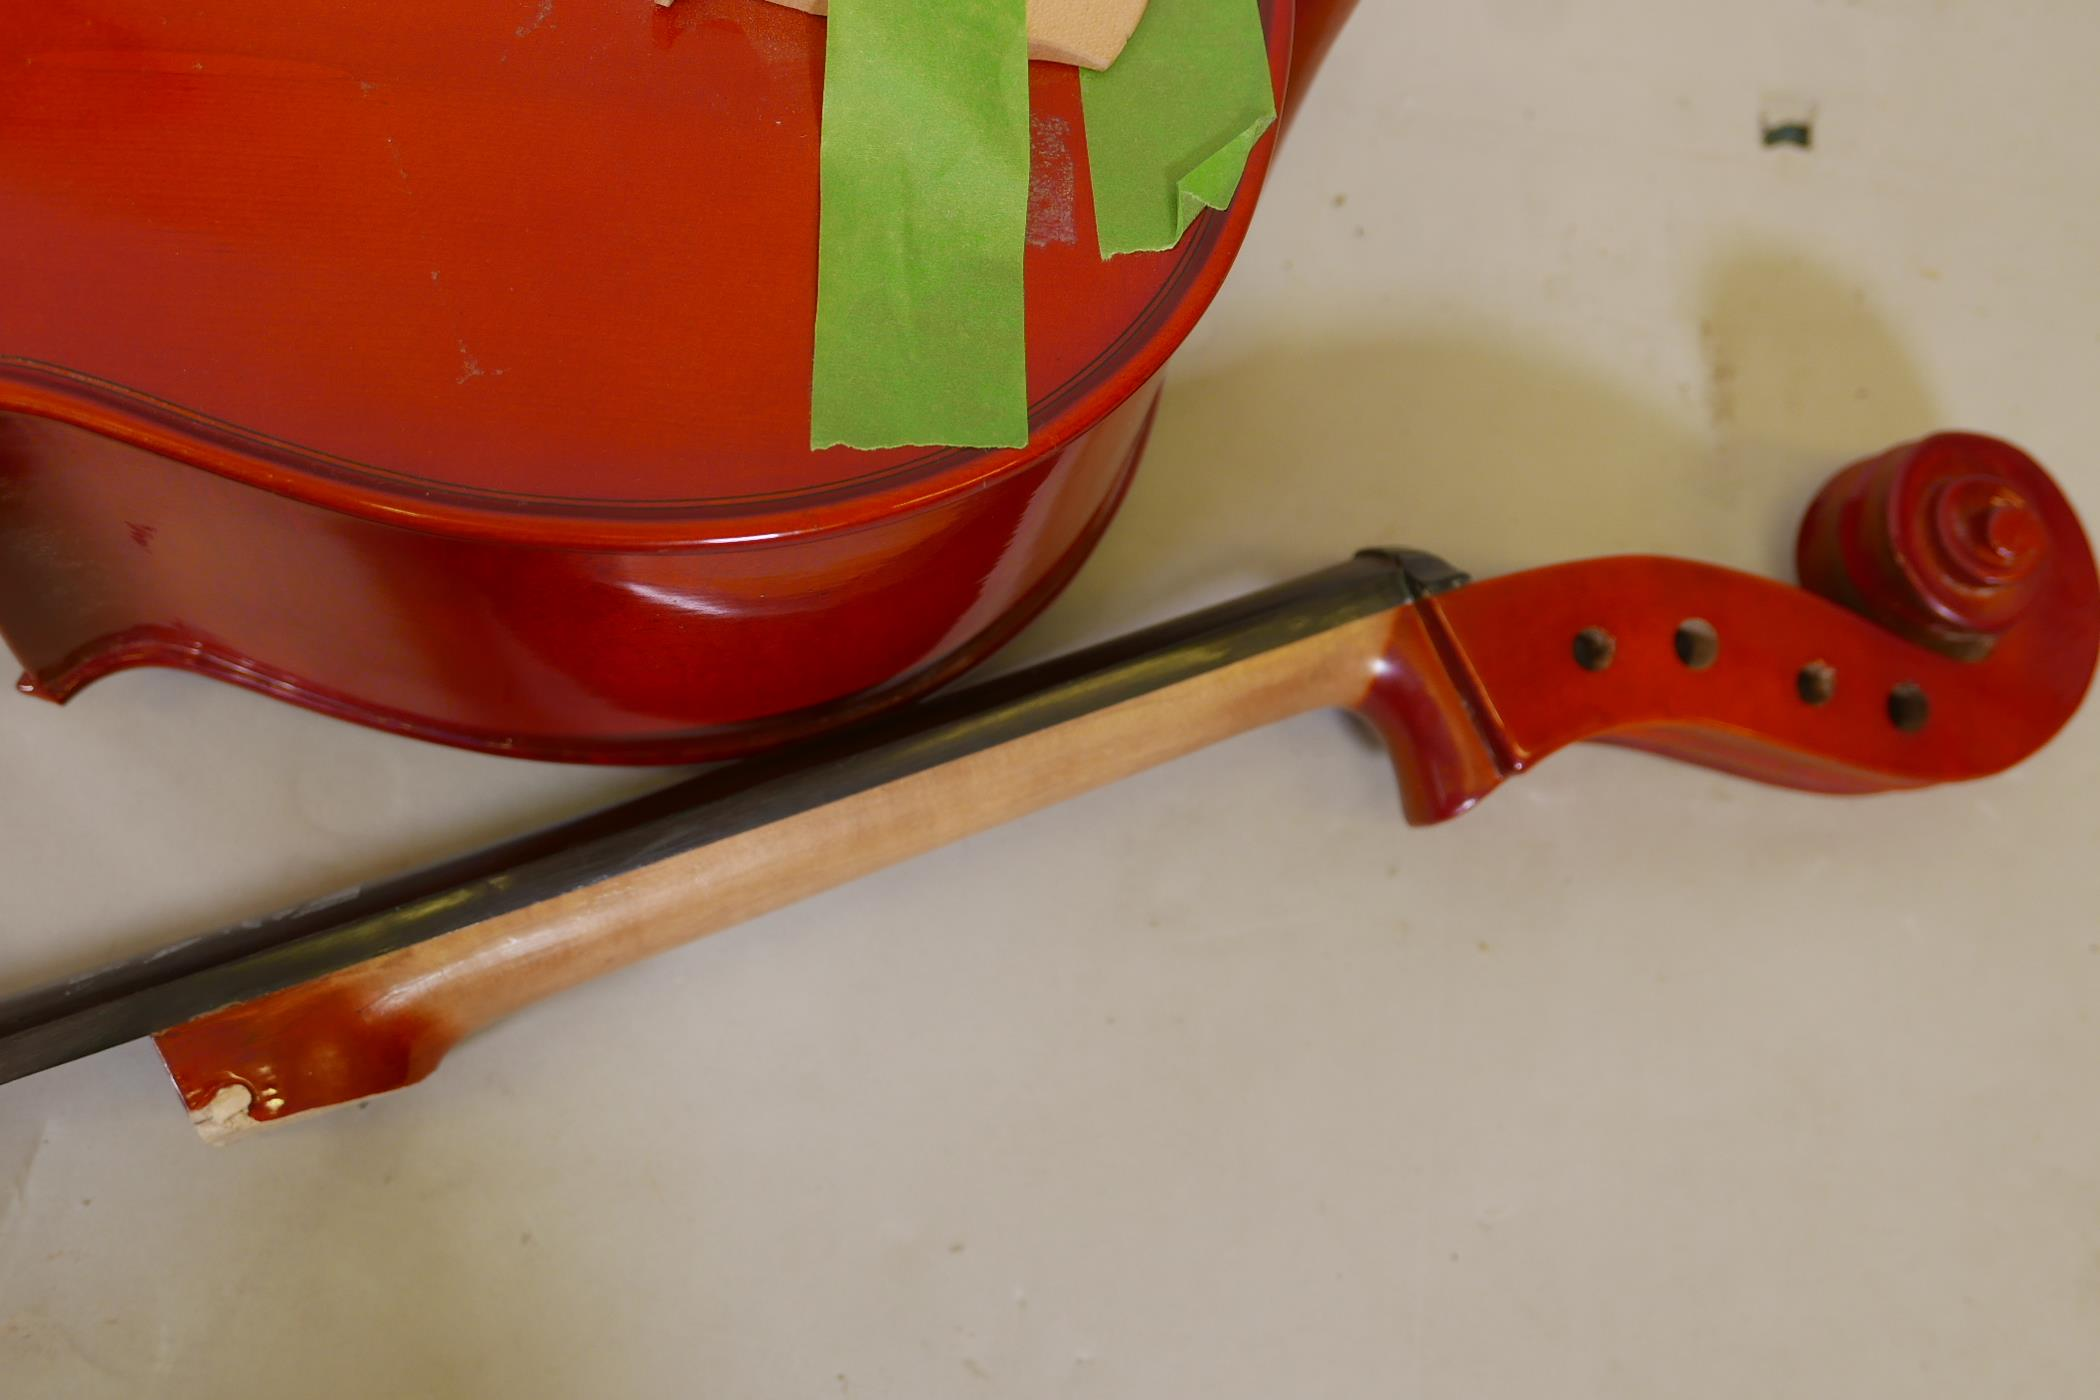 A cello for restoration, no tuning pegs - Image 3 of 4